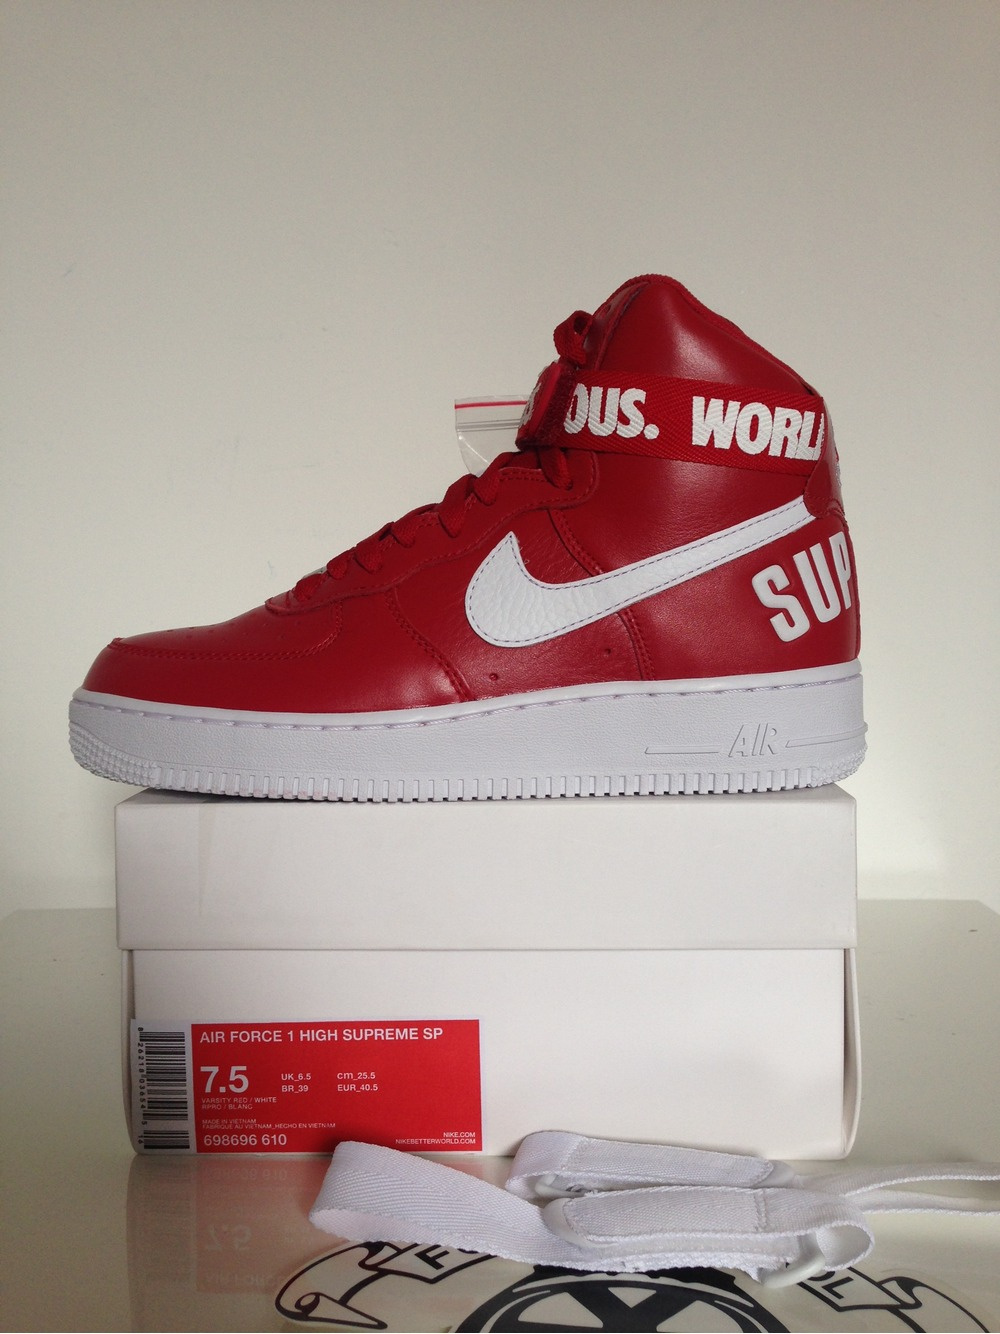 nike air force 1 mid no strap Royal Ontario Museum